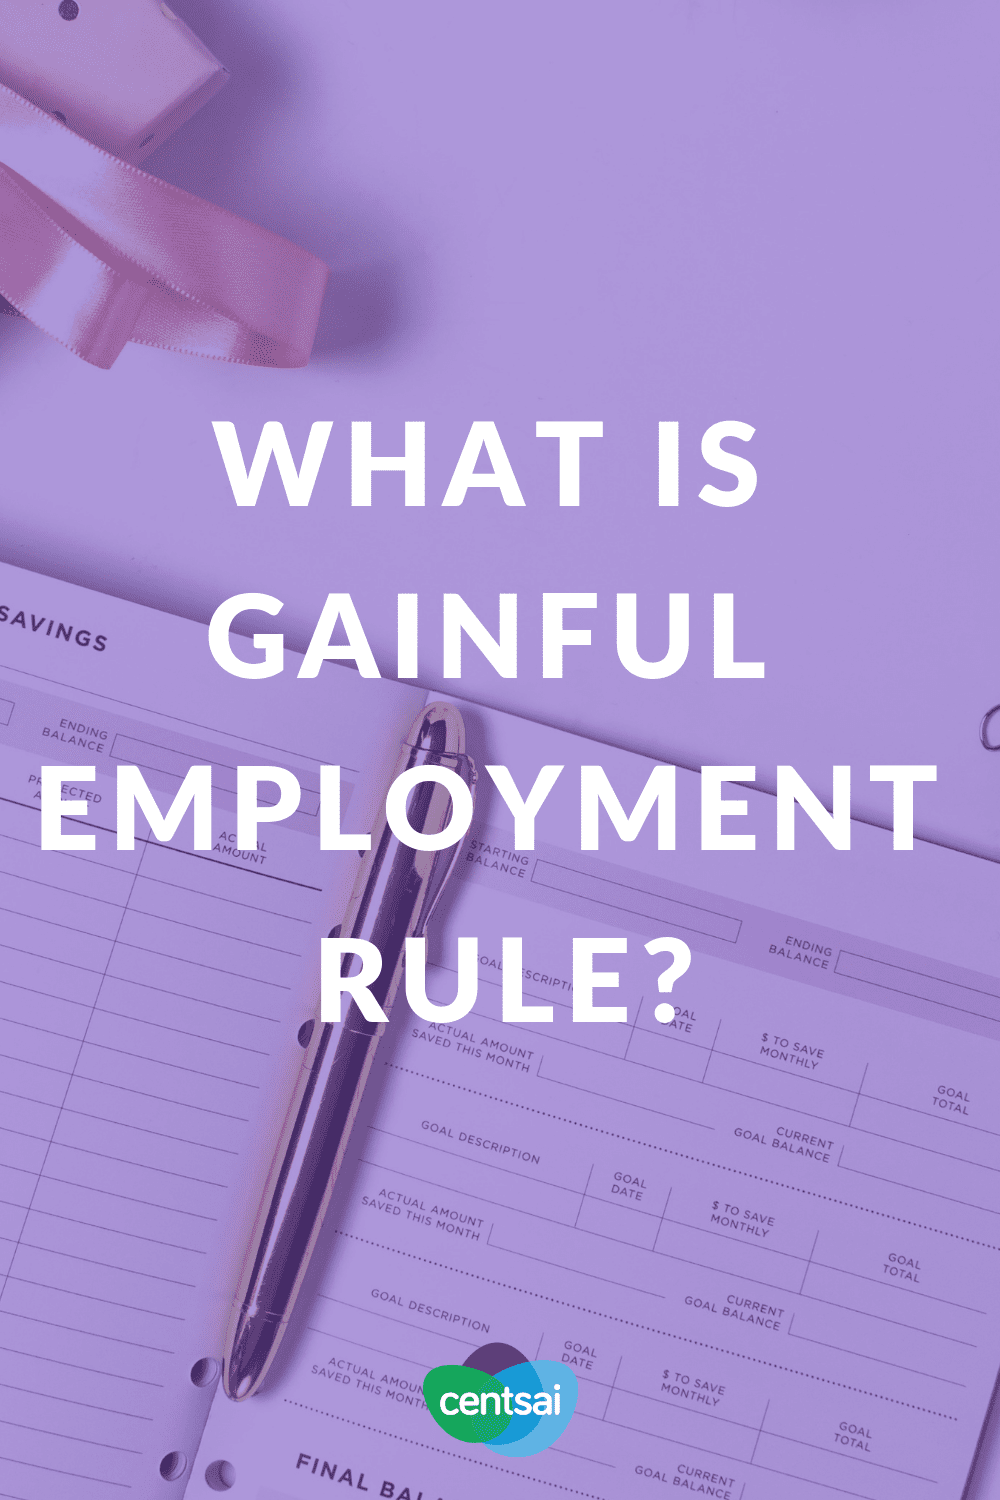 What is Gainful Employment Rule? The Obama-era gainful employment rule might not have long to live. Is that a blow to debt-laden students, or good riddance to a useless rule? #employment #debt #studentdebt #studentloan